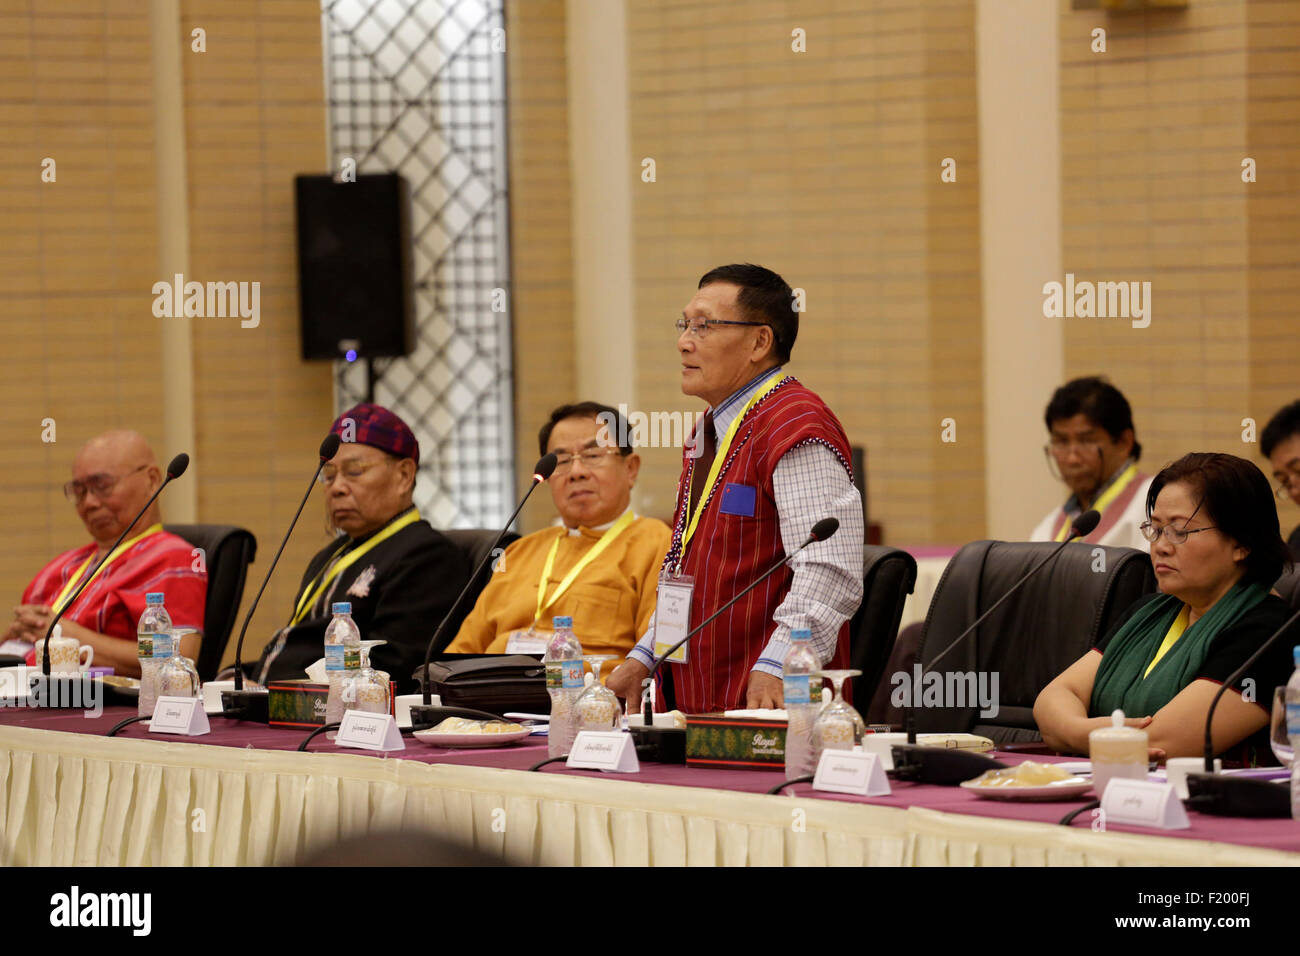 Nay Pyi Taw, Myanmar. 9th Sep, 2015. President of Karenni National Progressive Party Khun Abel Tweed (2nd R) speaks - Stock Image